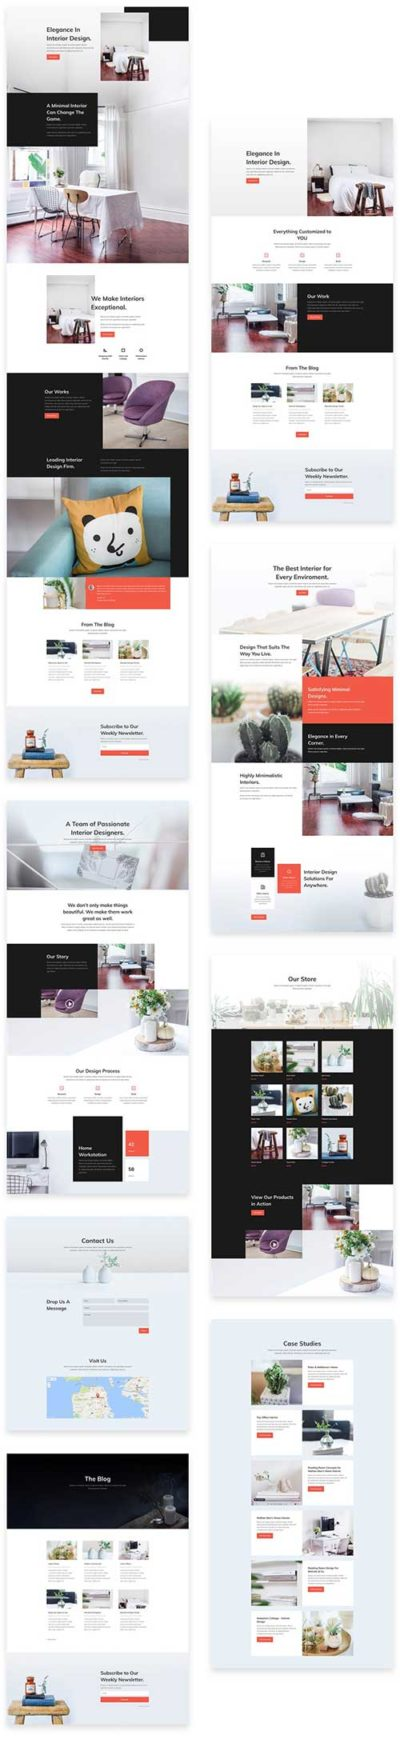 free divi layout for interior design agency